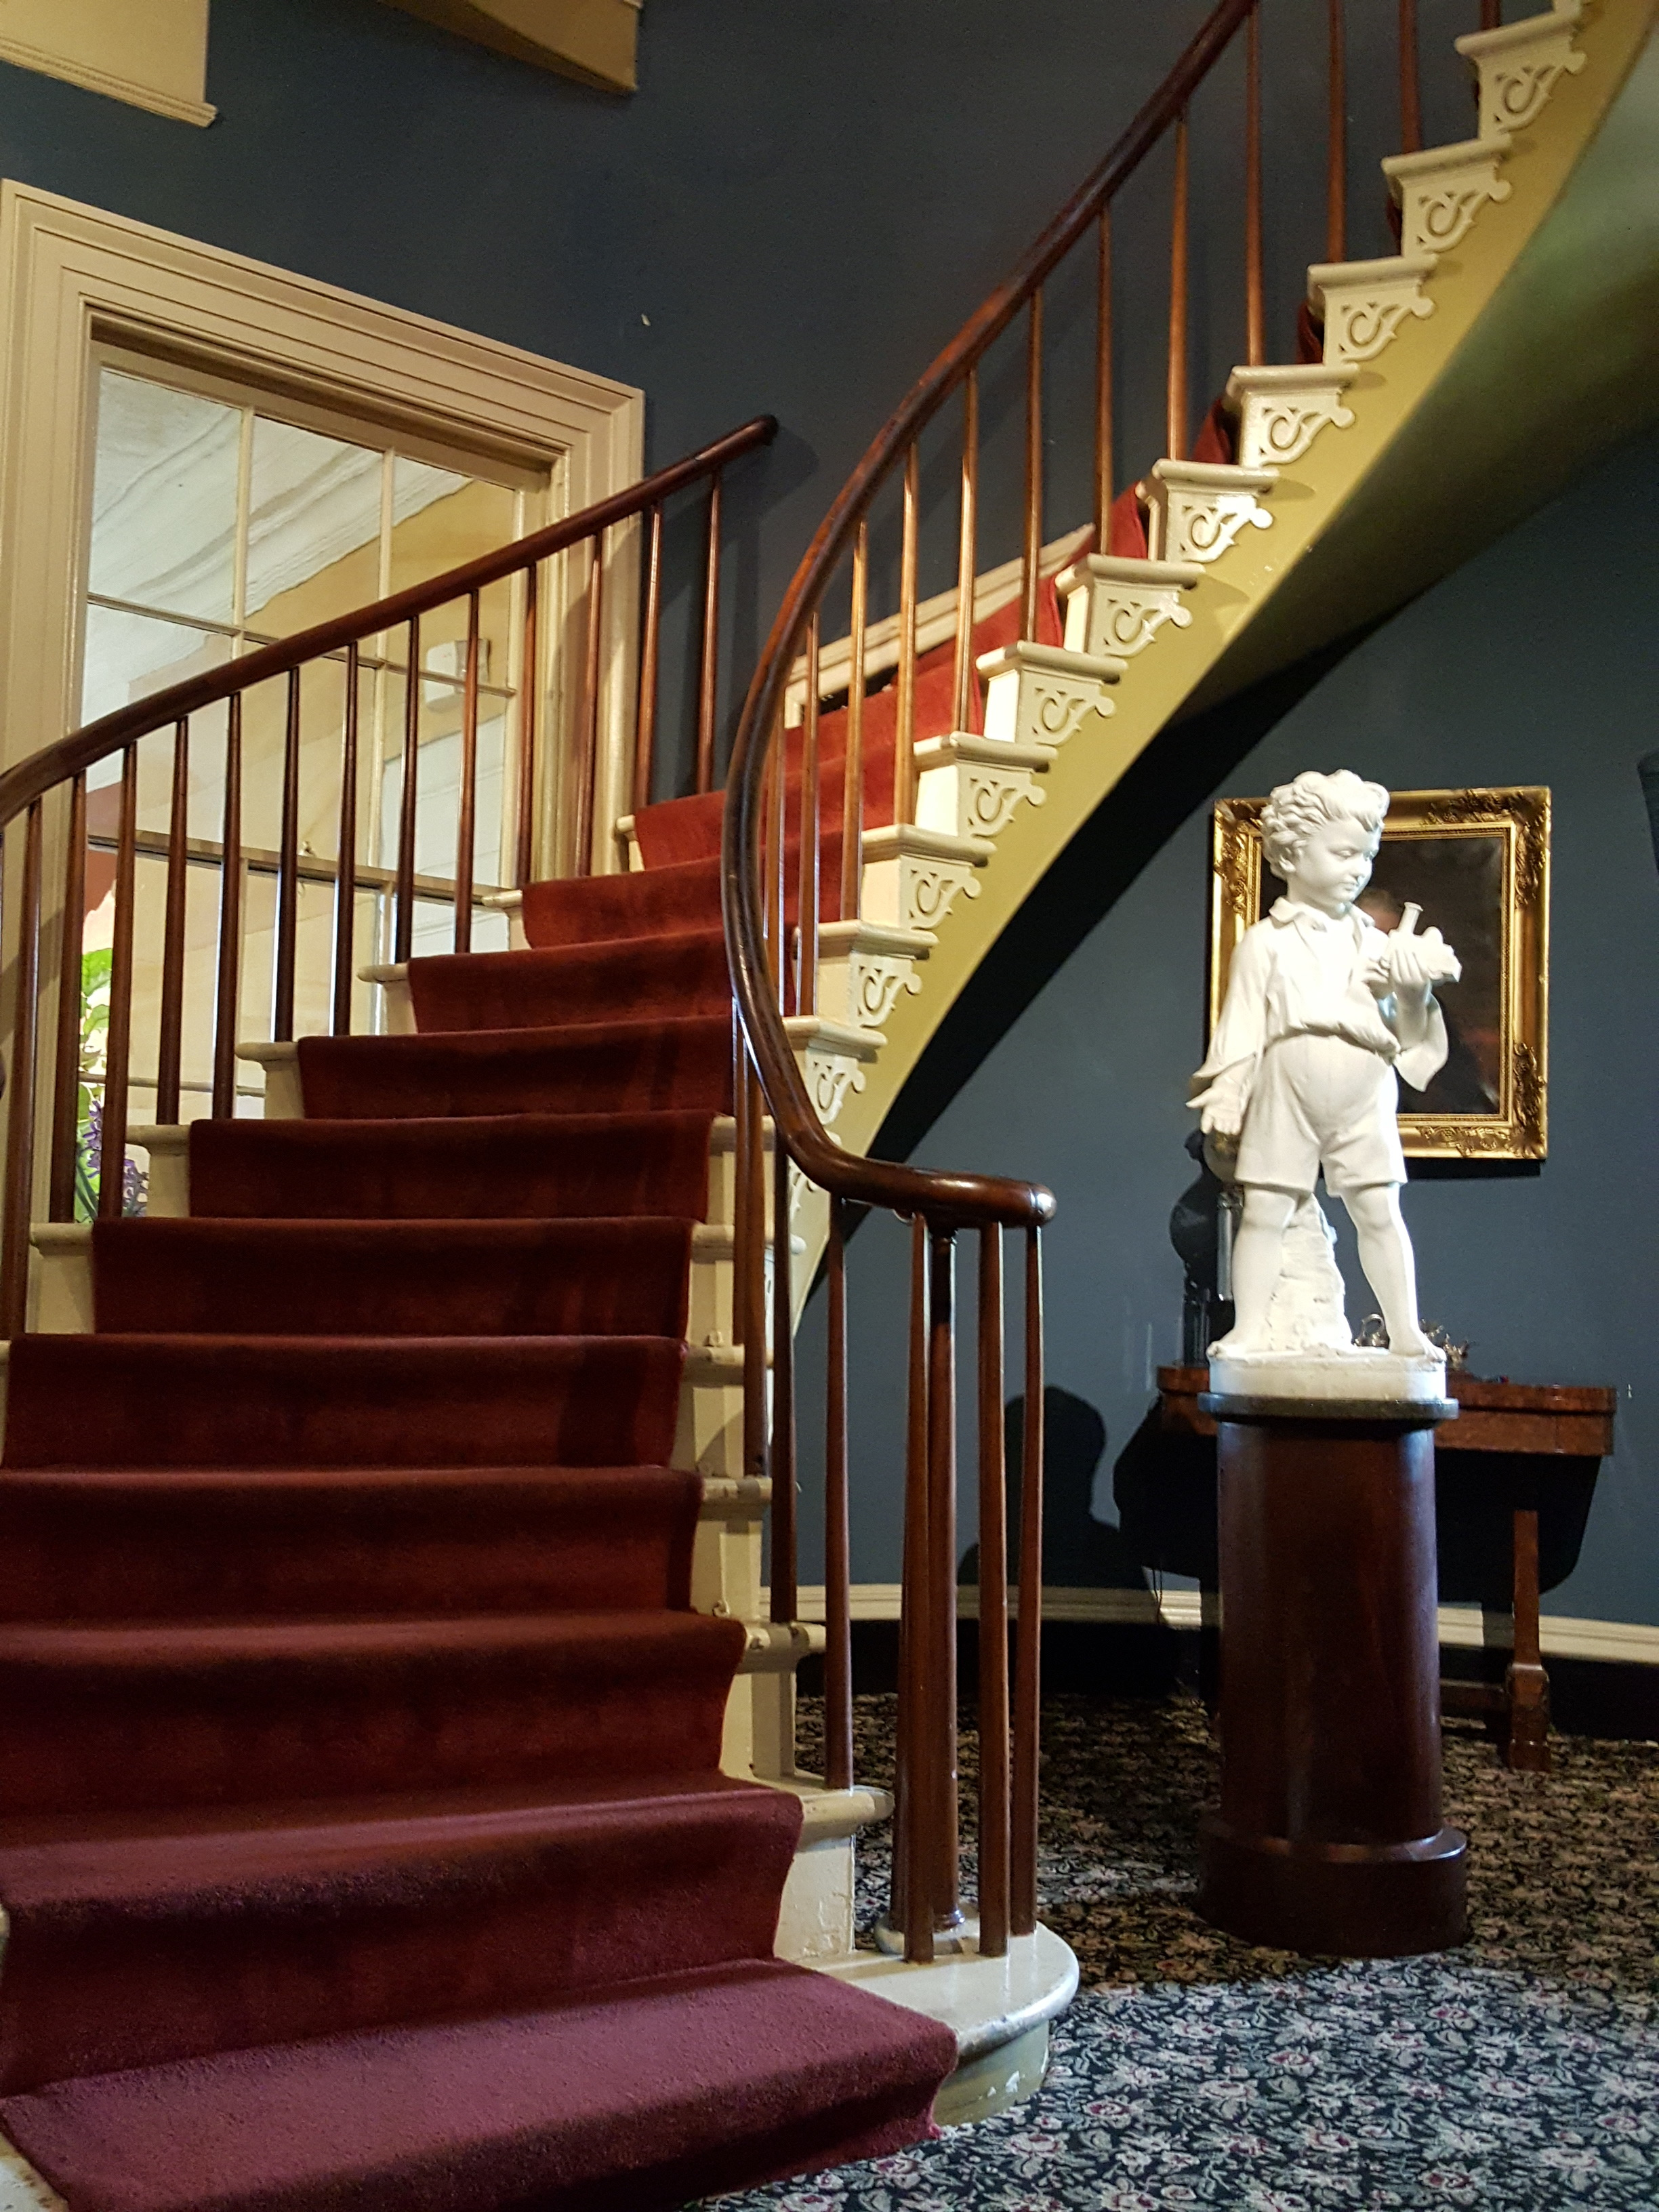 The freestanding staircase where a young girl in a blue dress often makes appearances.